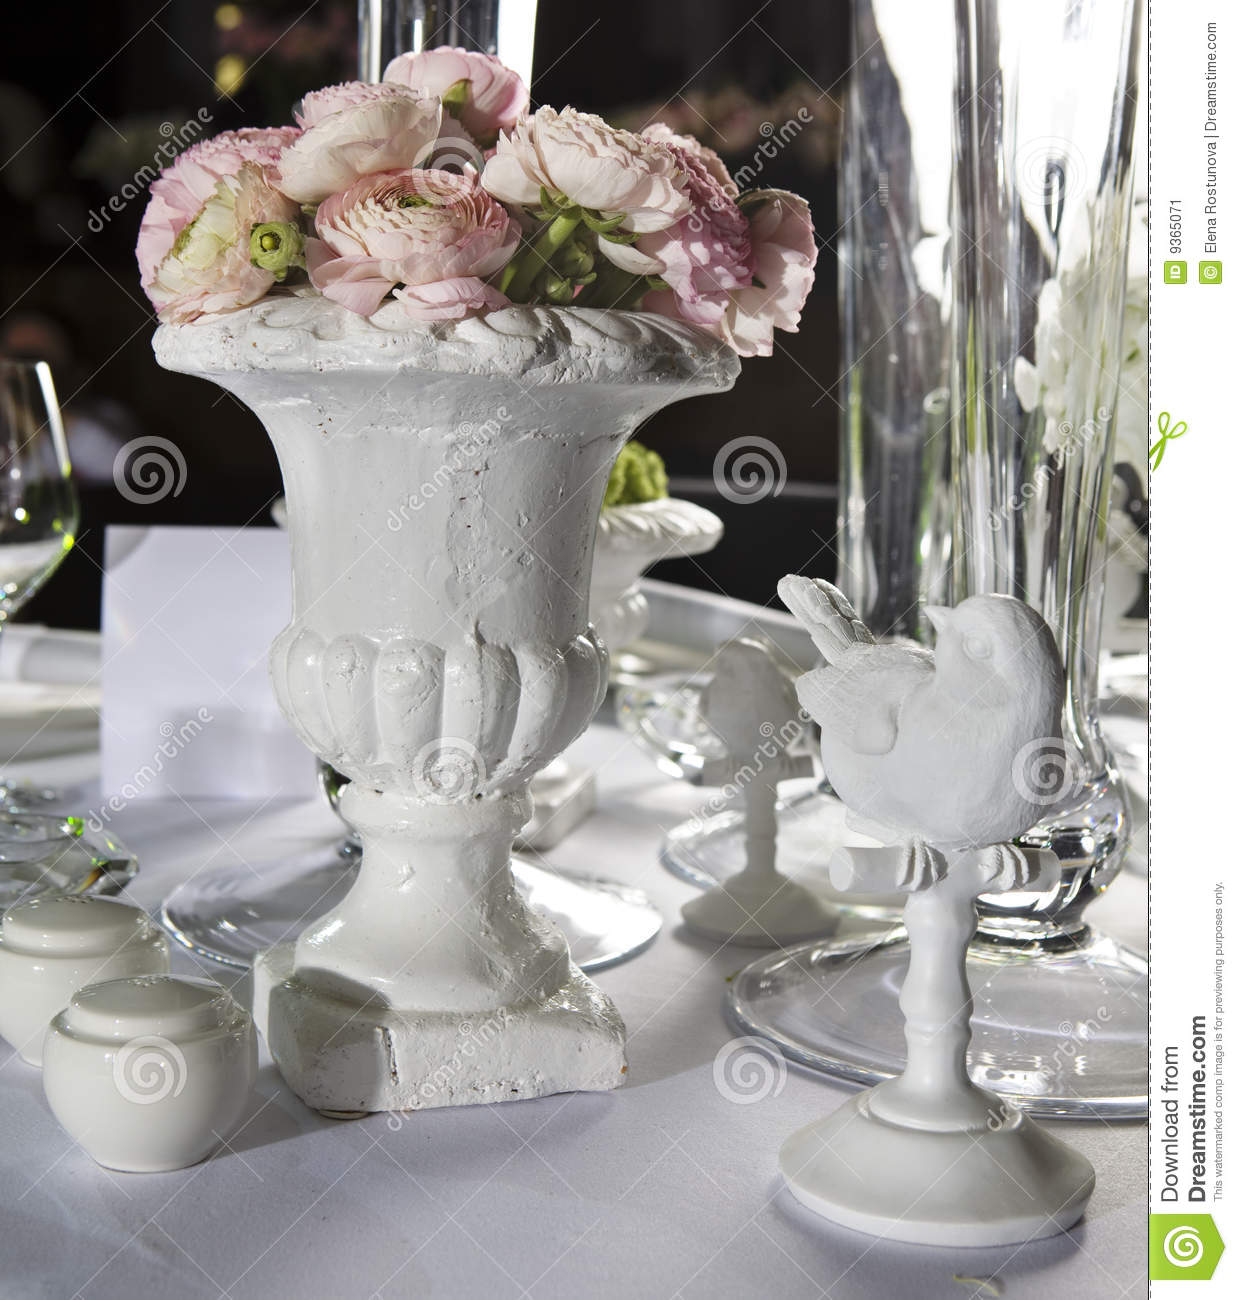 Decoration dining table in restaurant stock image